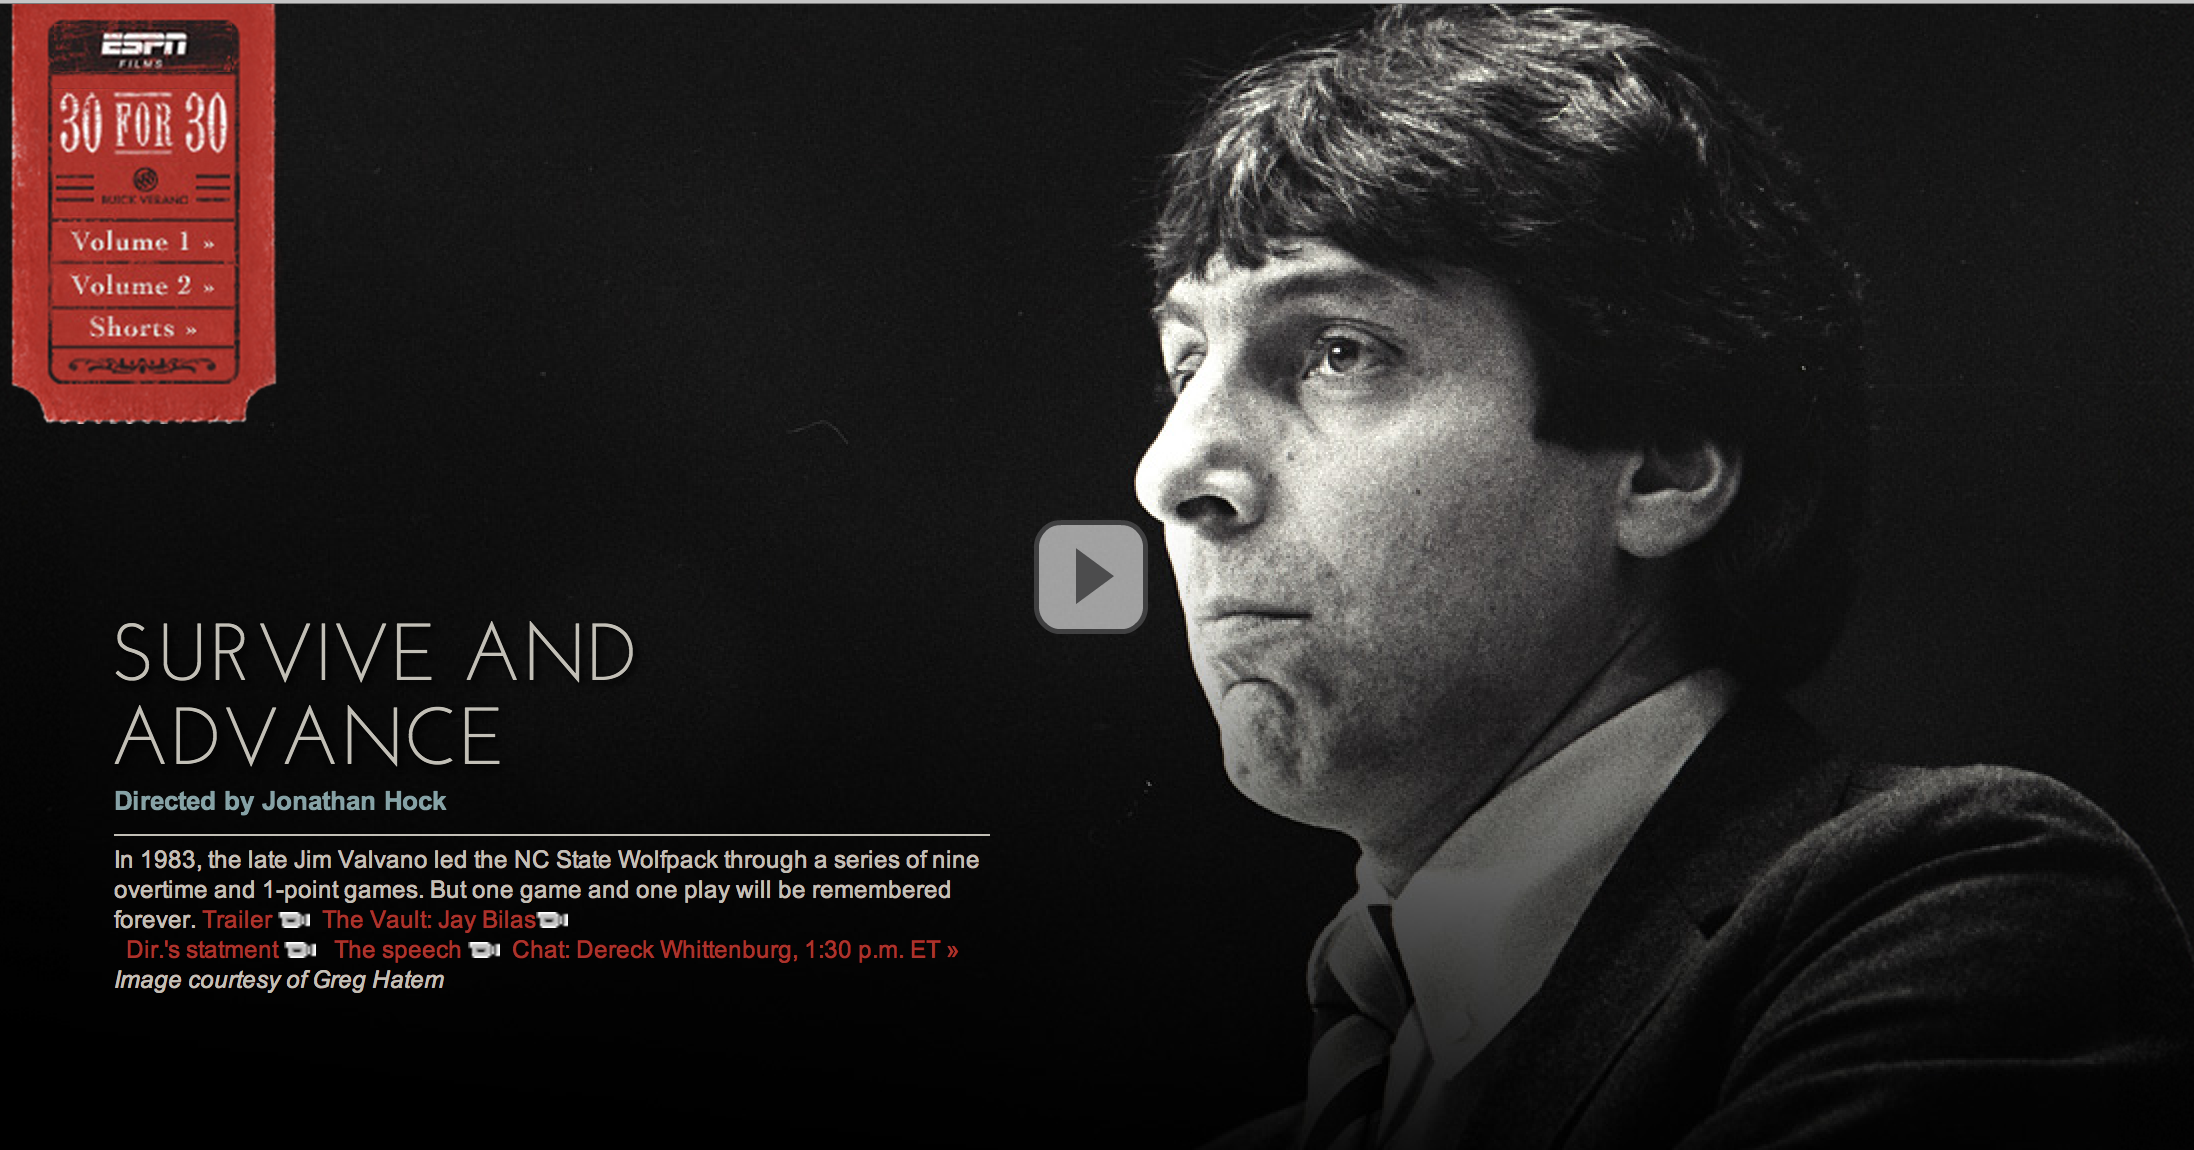 Survive and Advance is a must see because of the thoughtful blend of heart wrenching biography and edge of your seat sports history. Jimmy V is someone you need to know, and what NC State accomplished has stood the test of time.